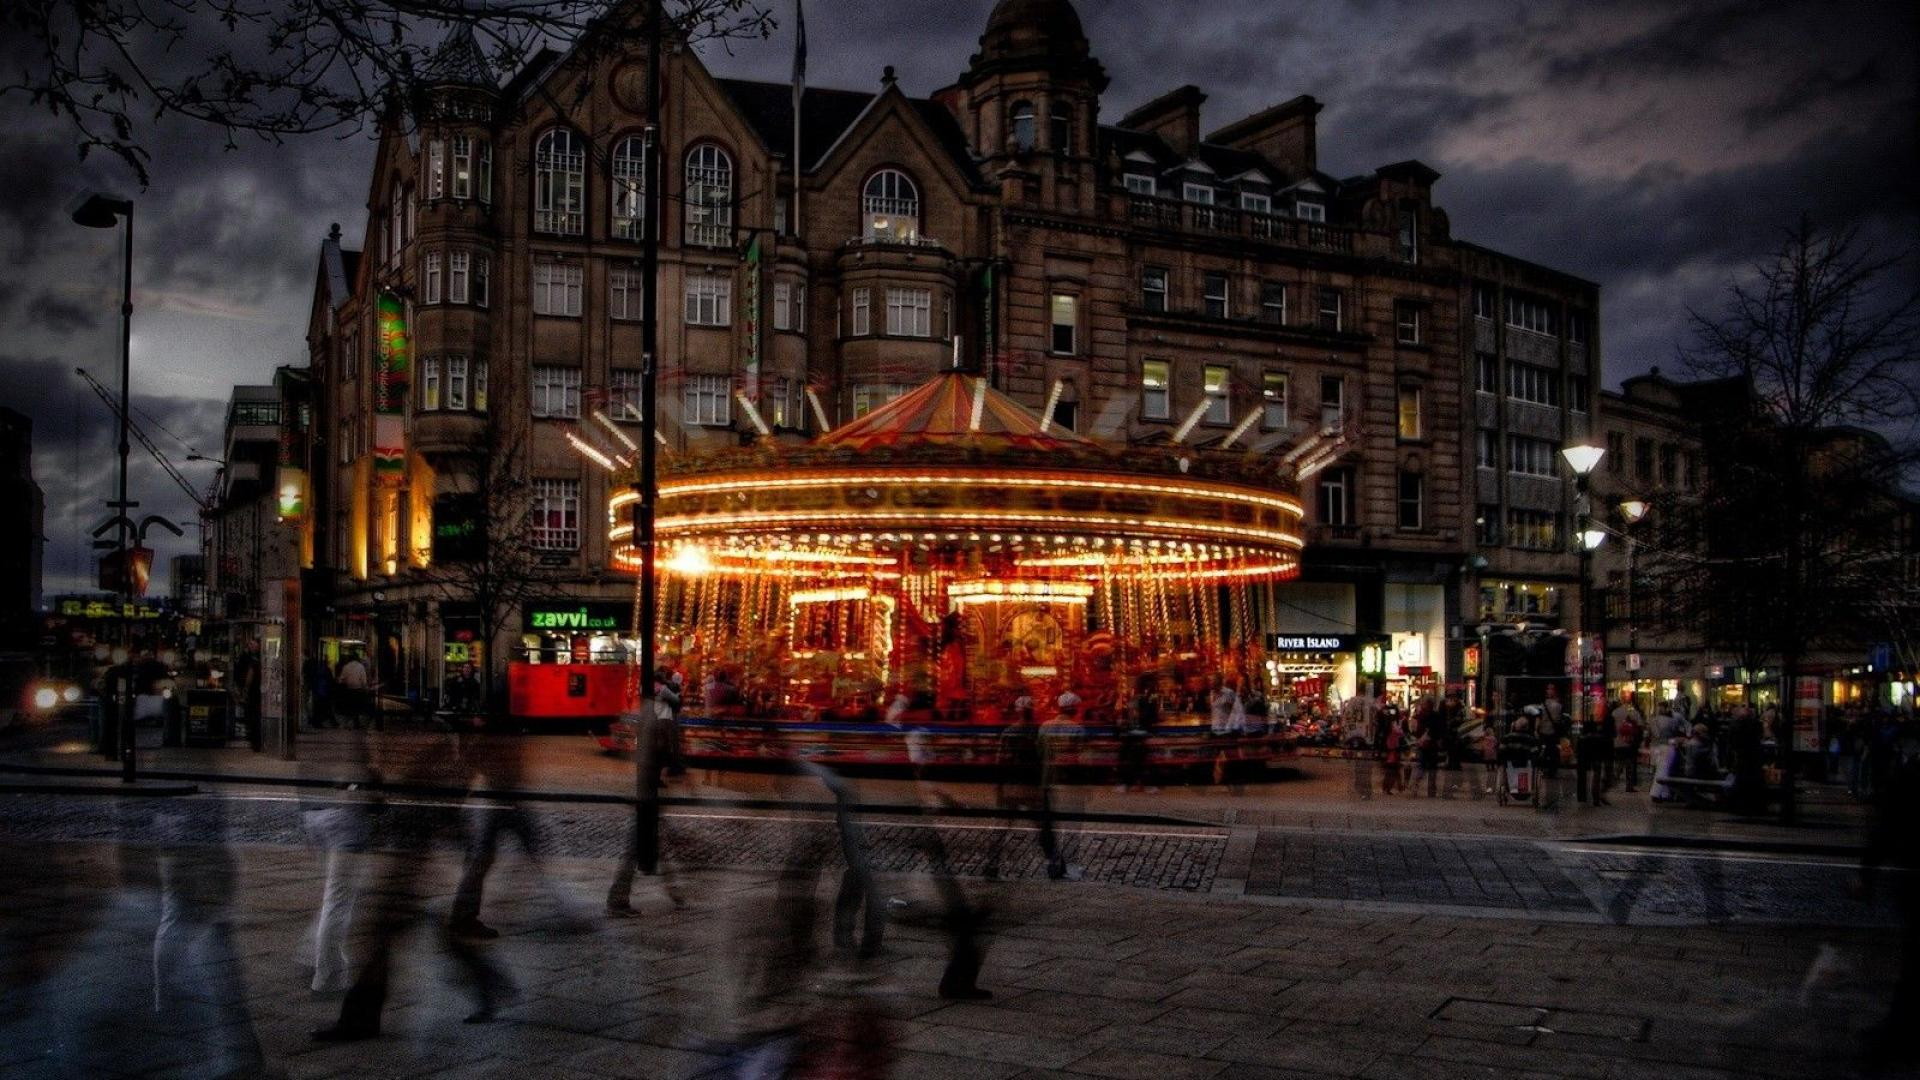 merry go round in sheffield england hdr wallpaper   ForWallpapercom 1920x1080